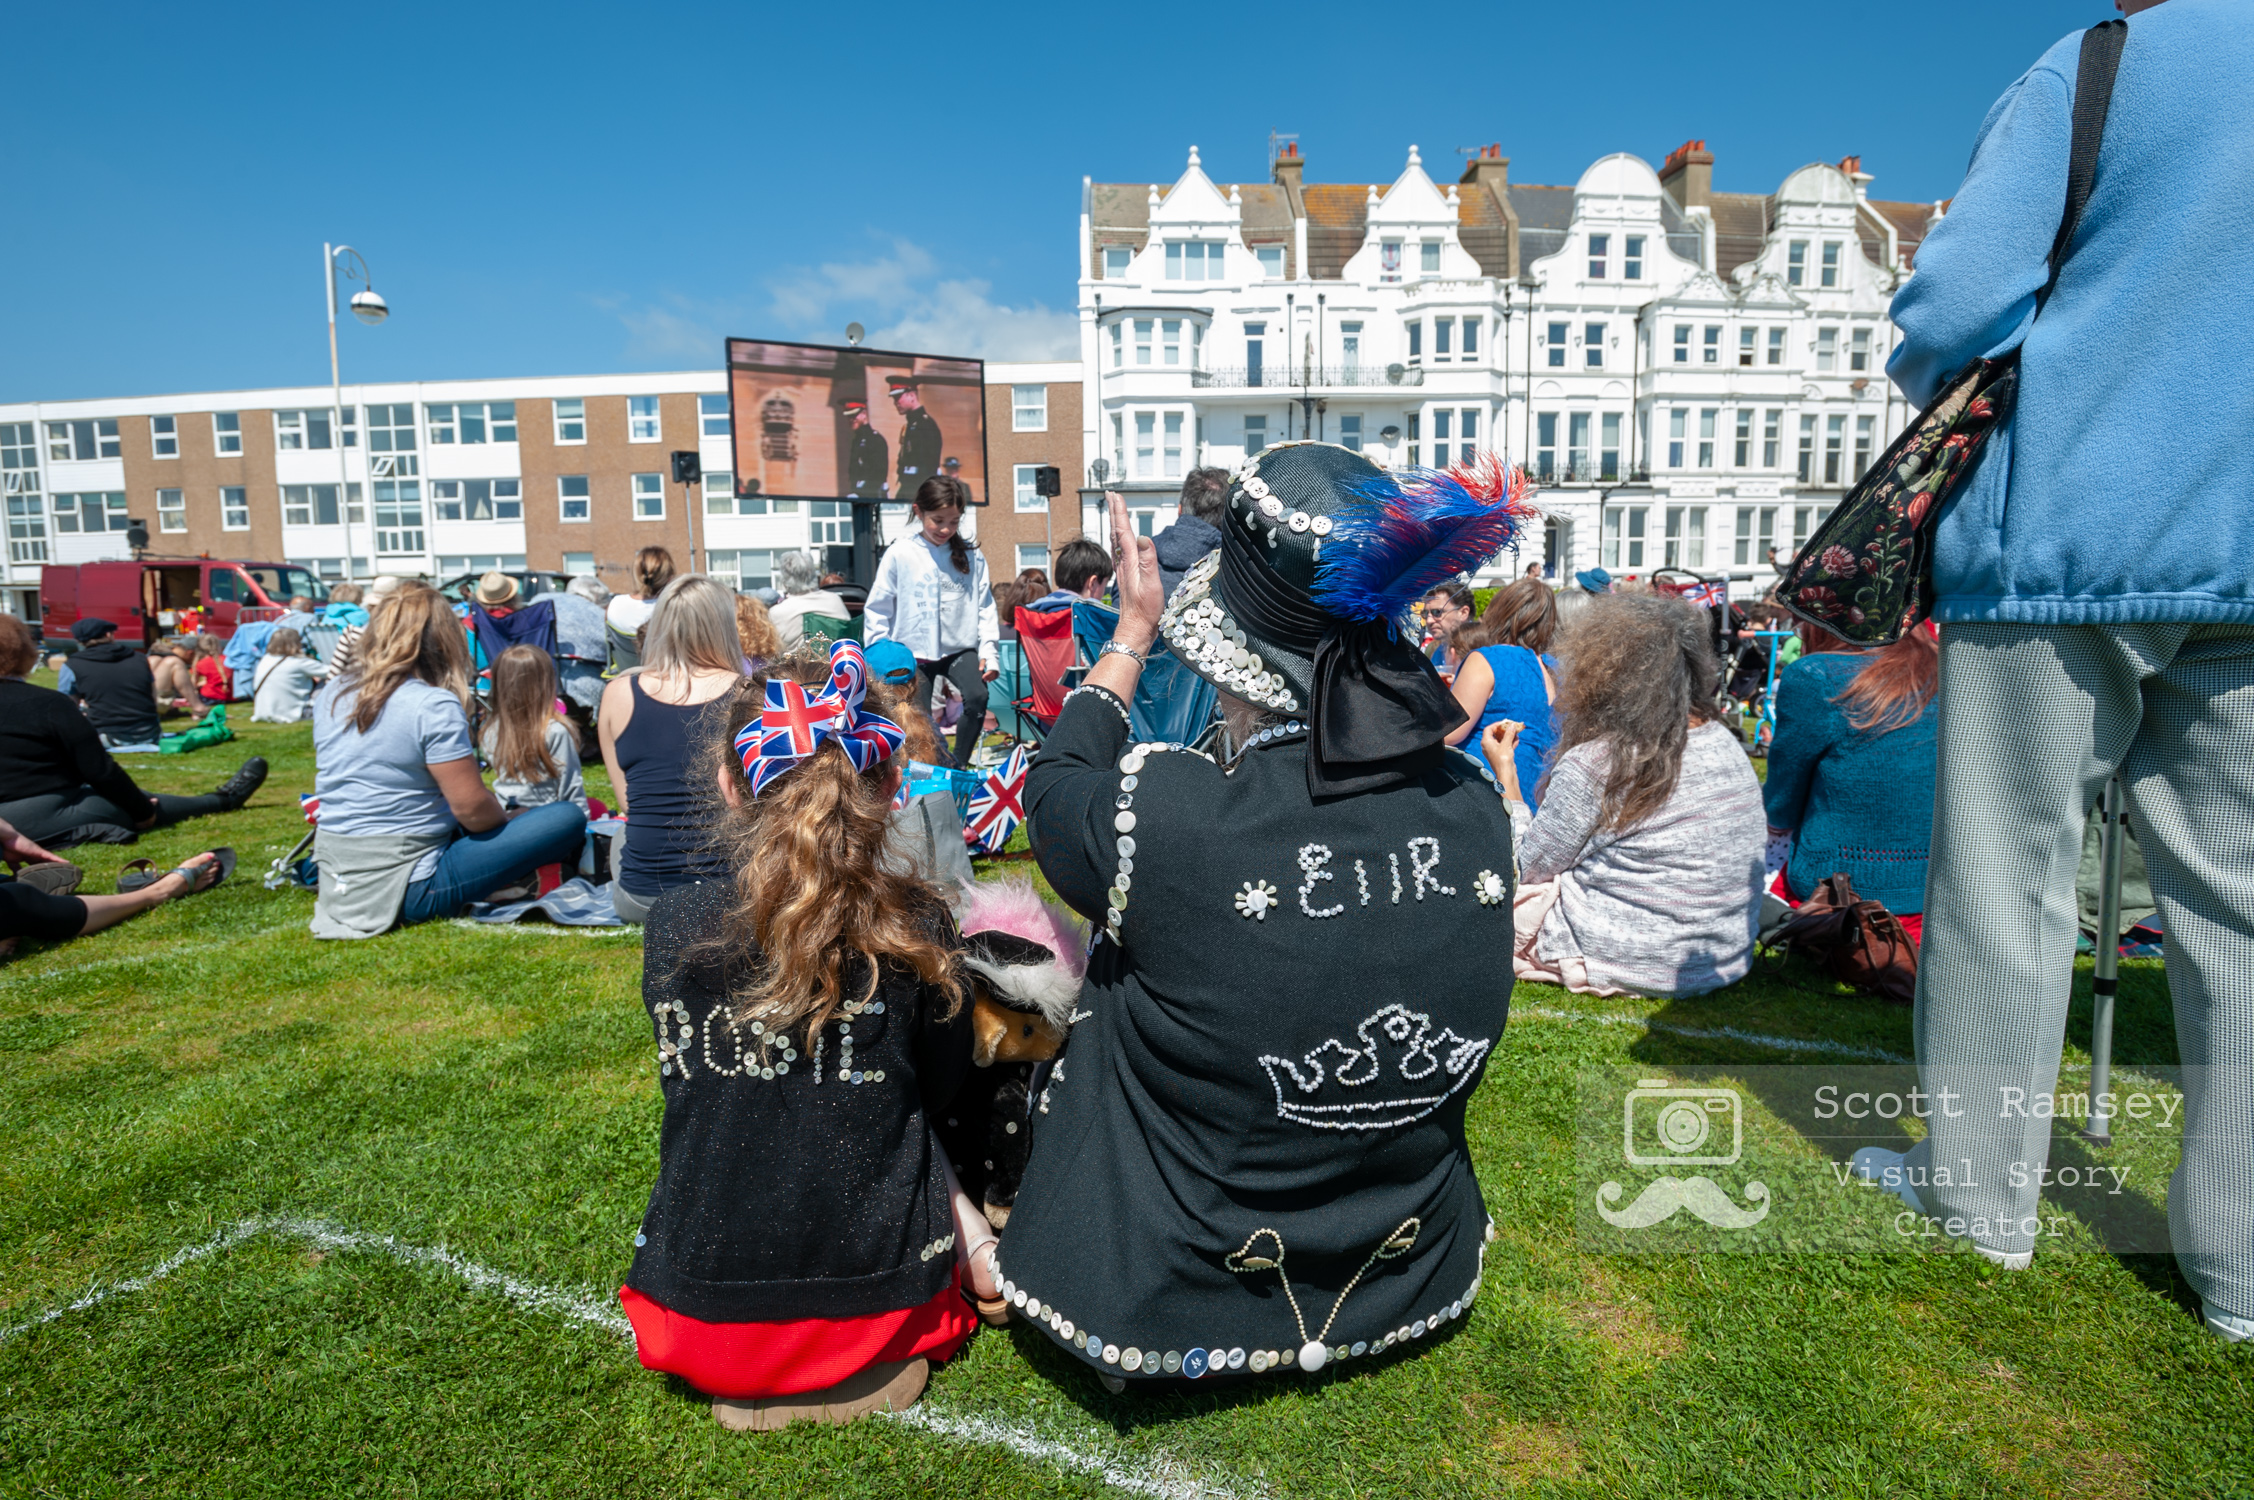 East-Sussex-Editorial-Photographer-Bexhill-Royal-Wedding-Celebrations-©-Scott-Ramsey-www.scottramsey.co.uk-007.jpg